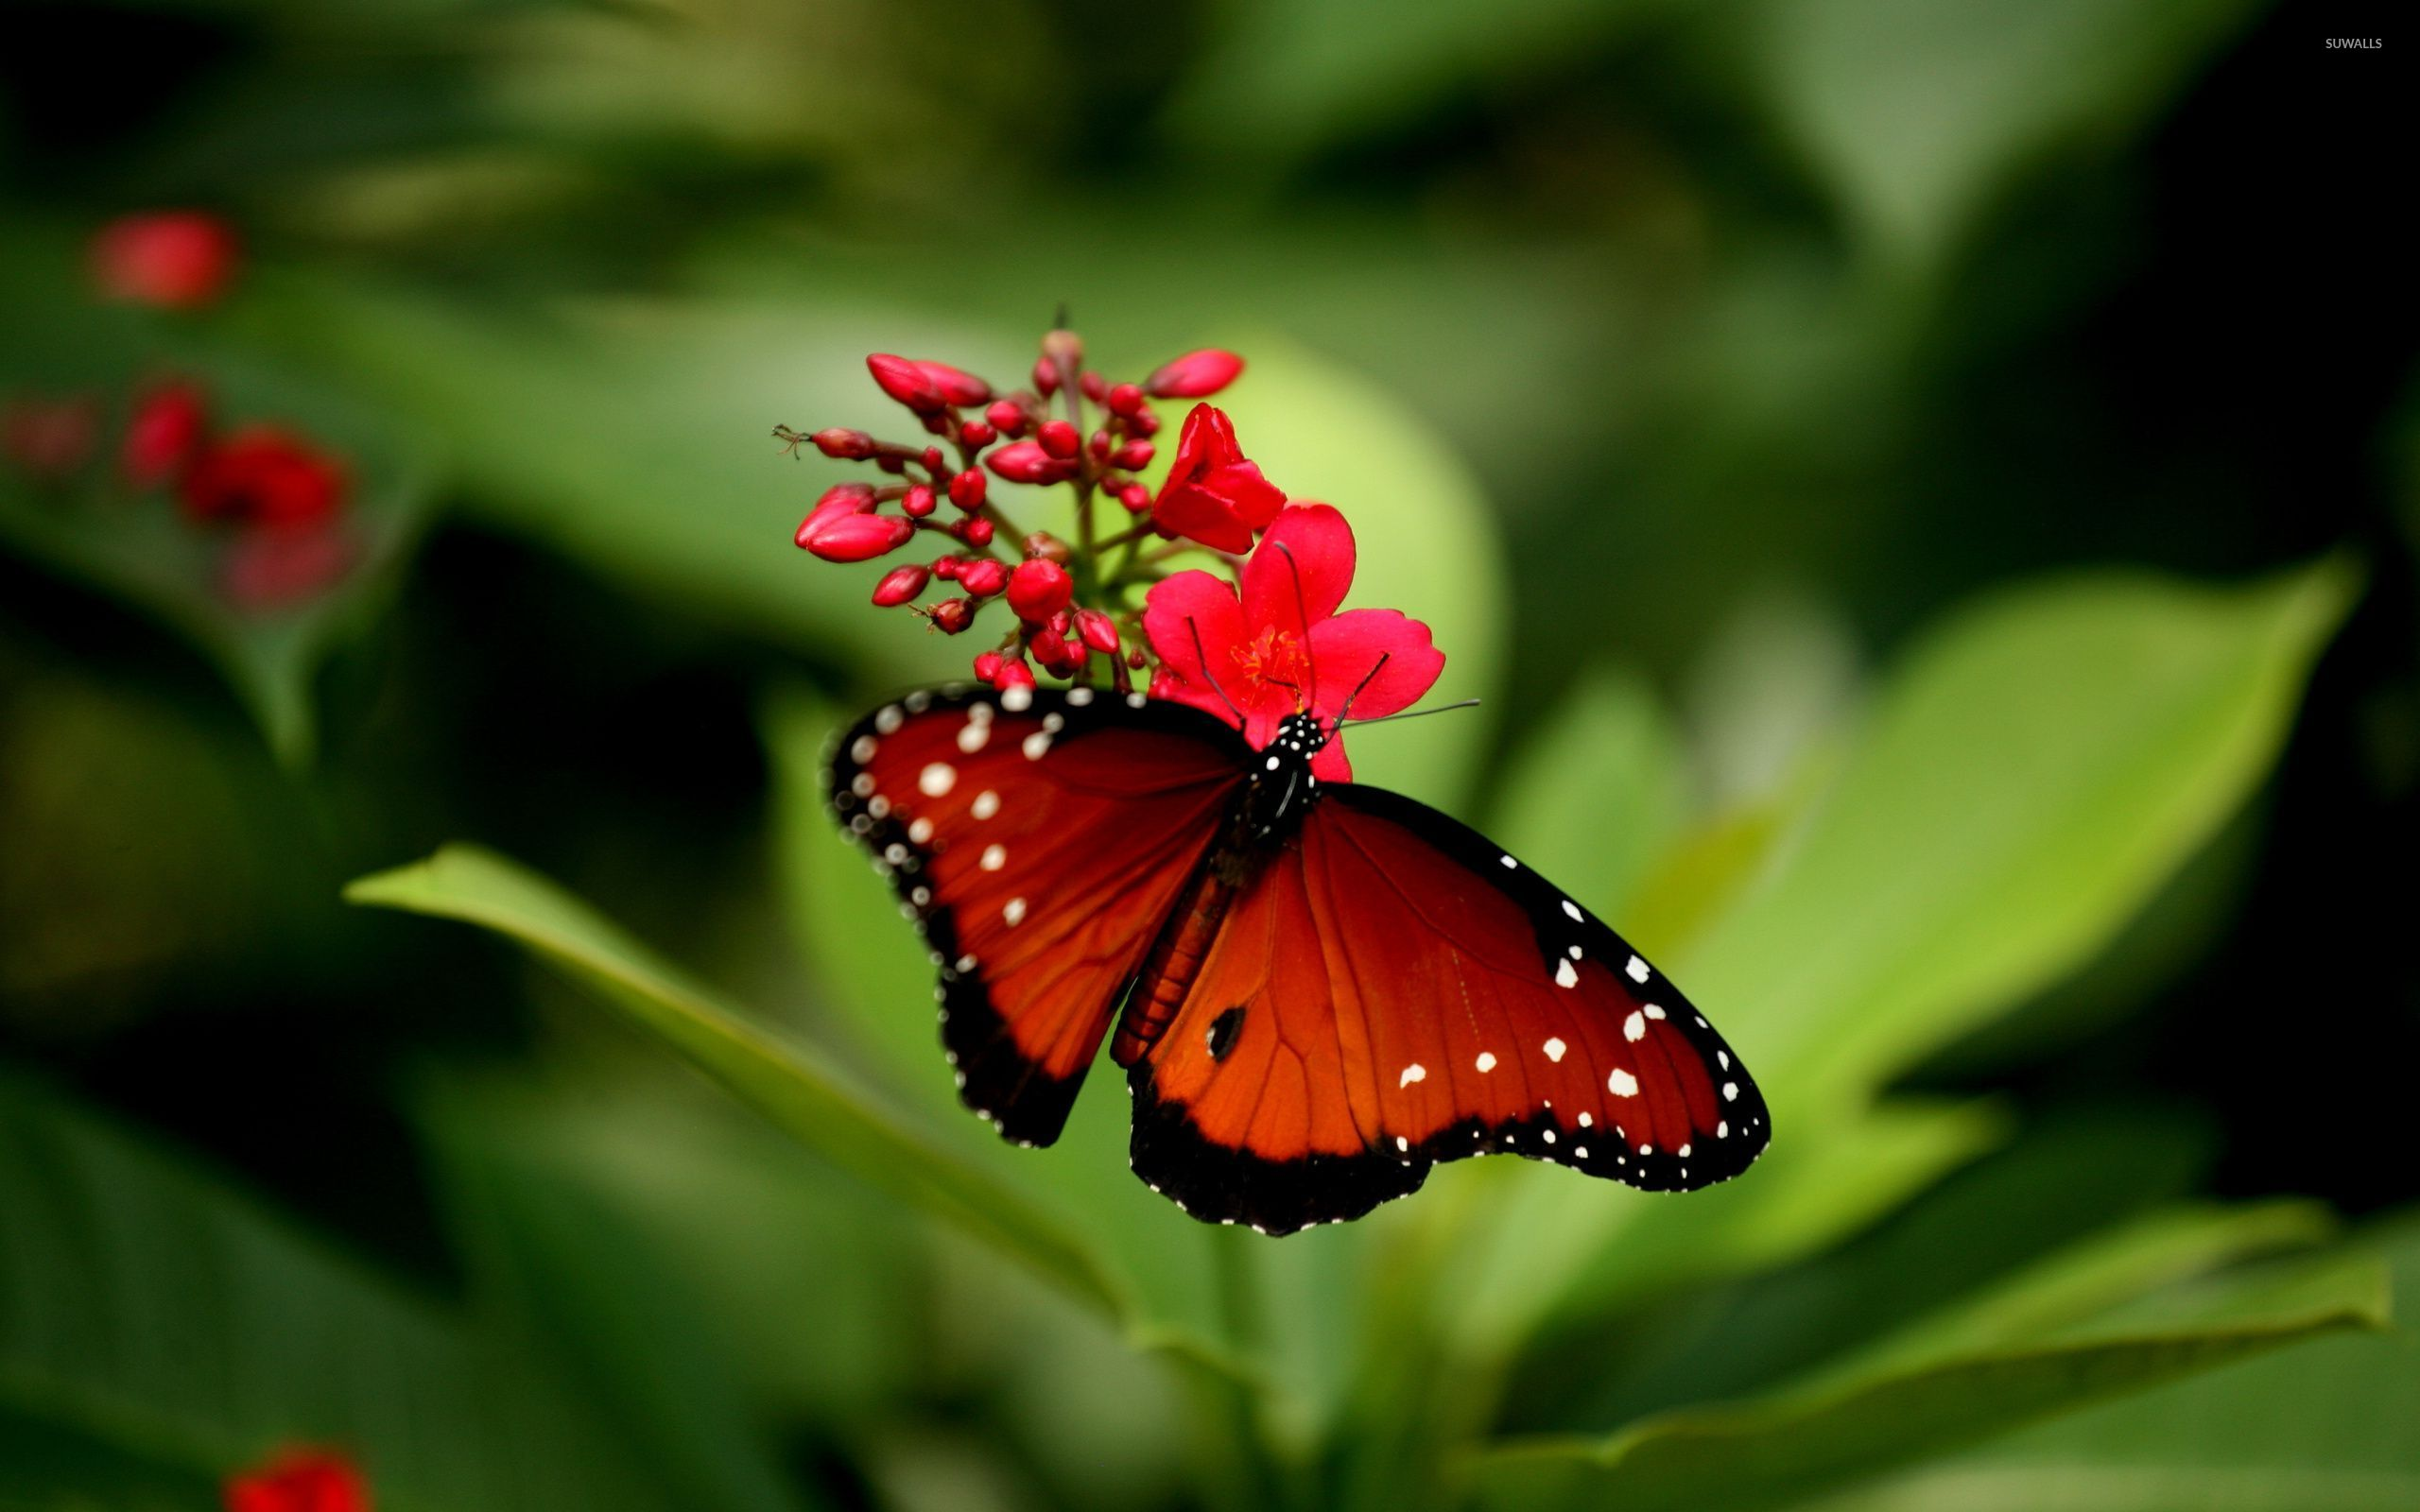 Love Hug Hd Wallpapers Download Red Butterfly Wallpaper Gallery